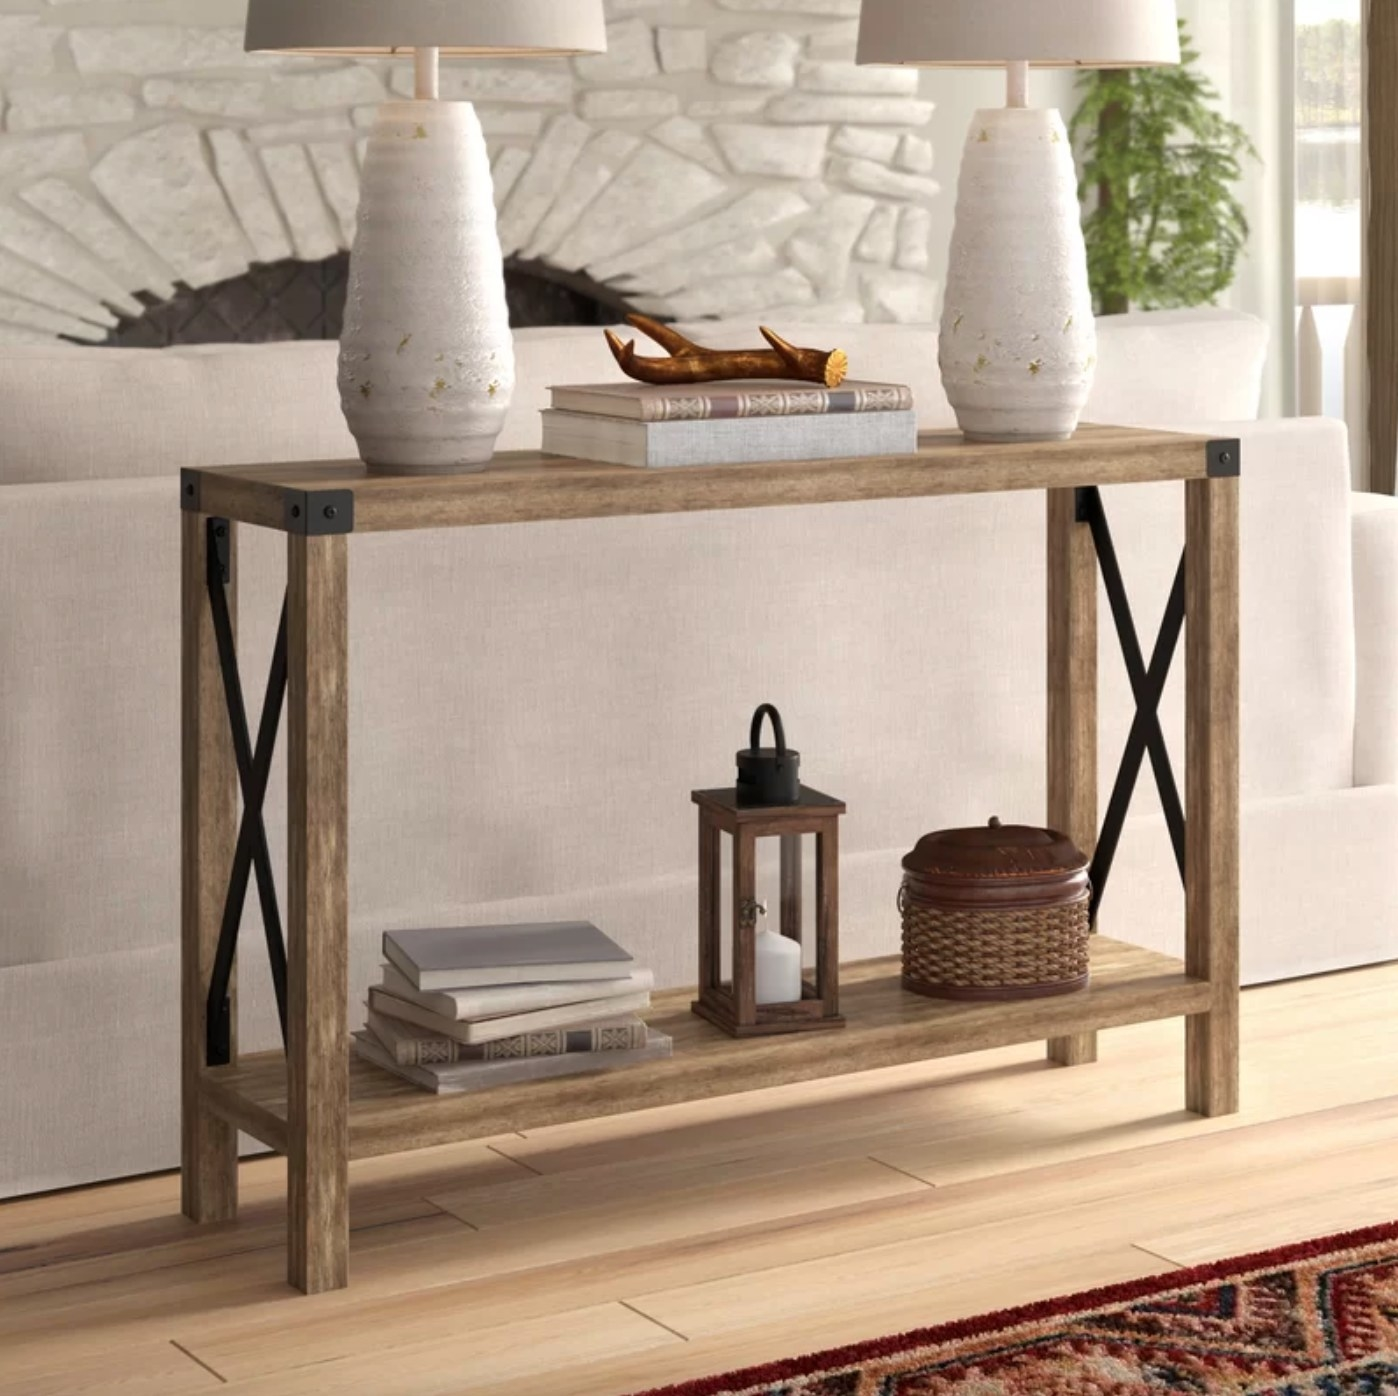 The wood console table holding books, lamps, and trinkets